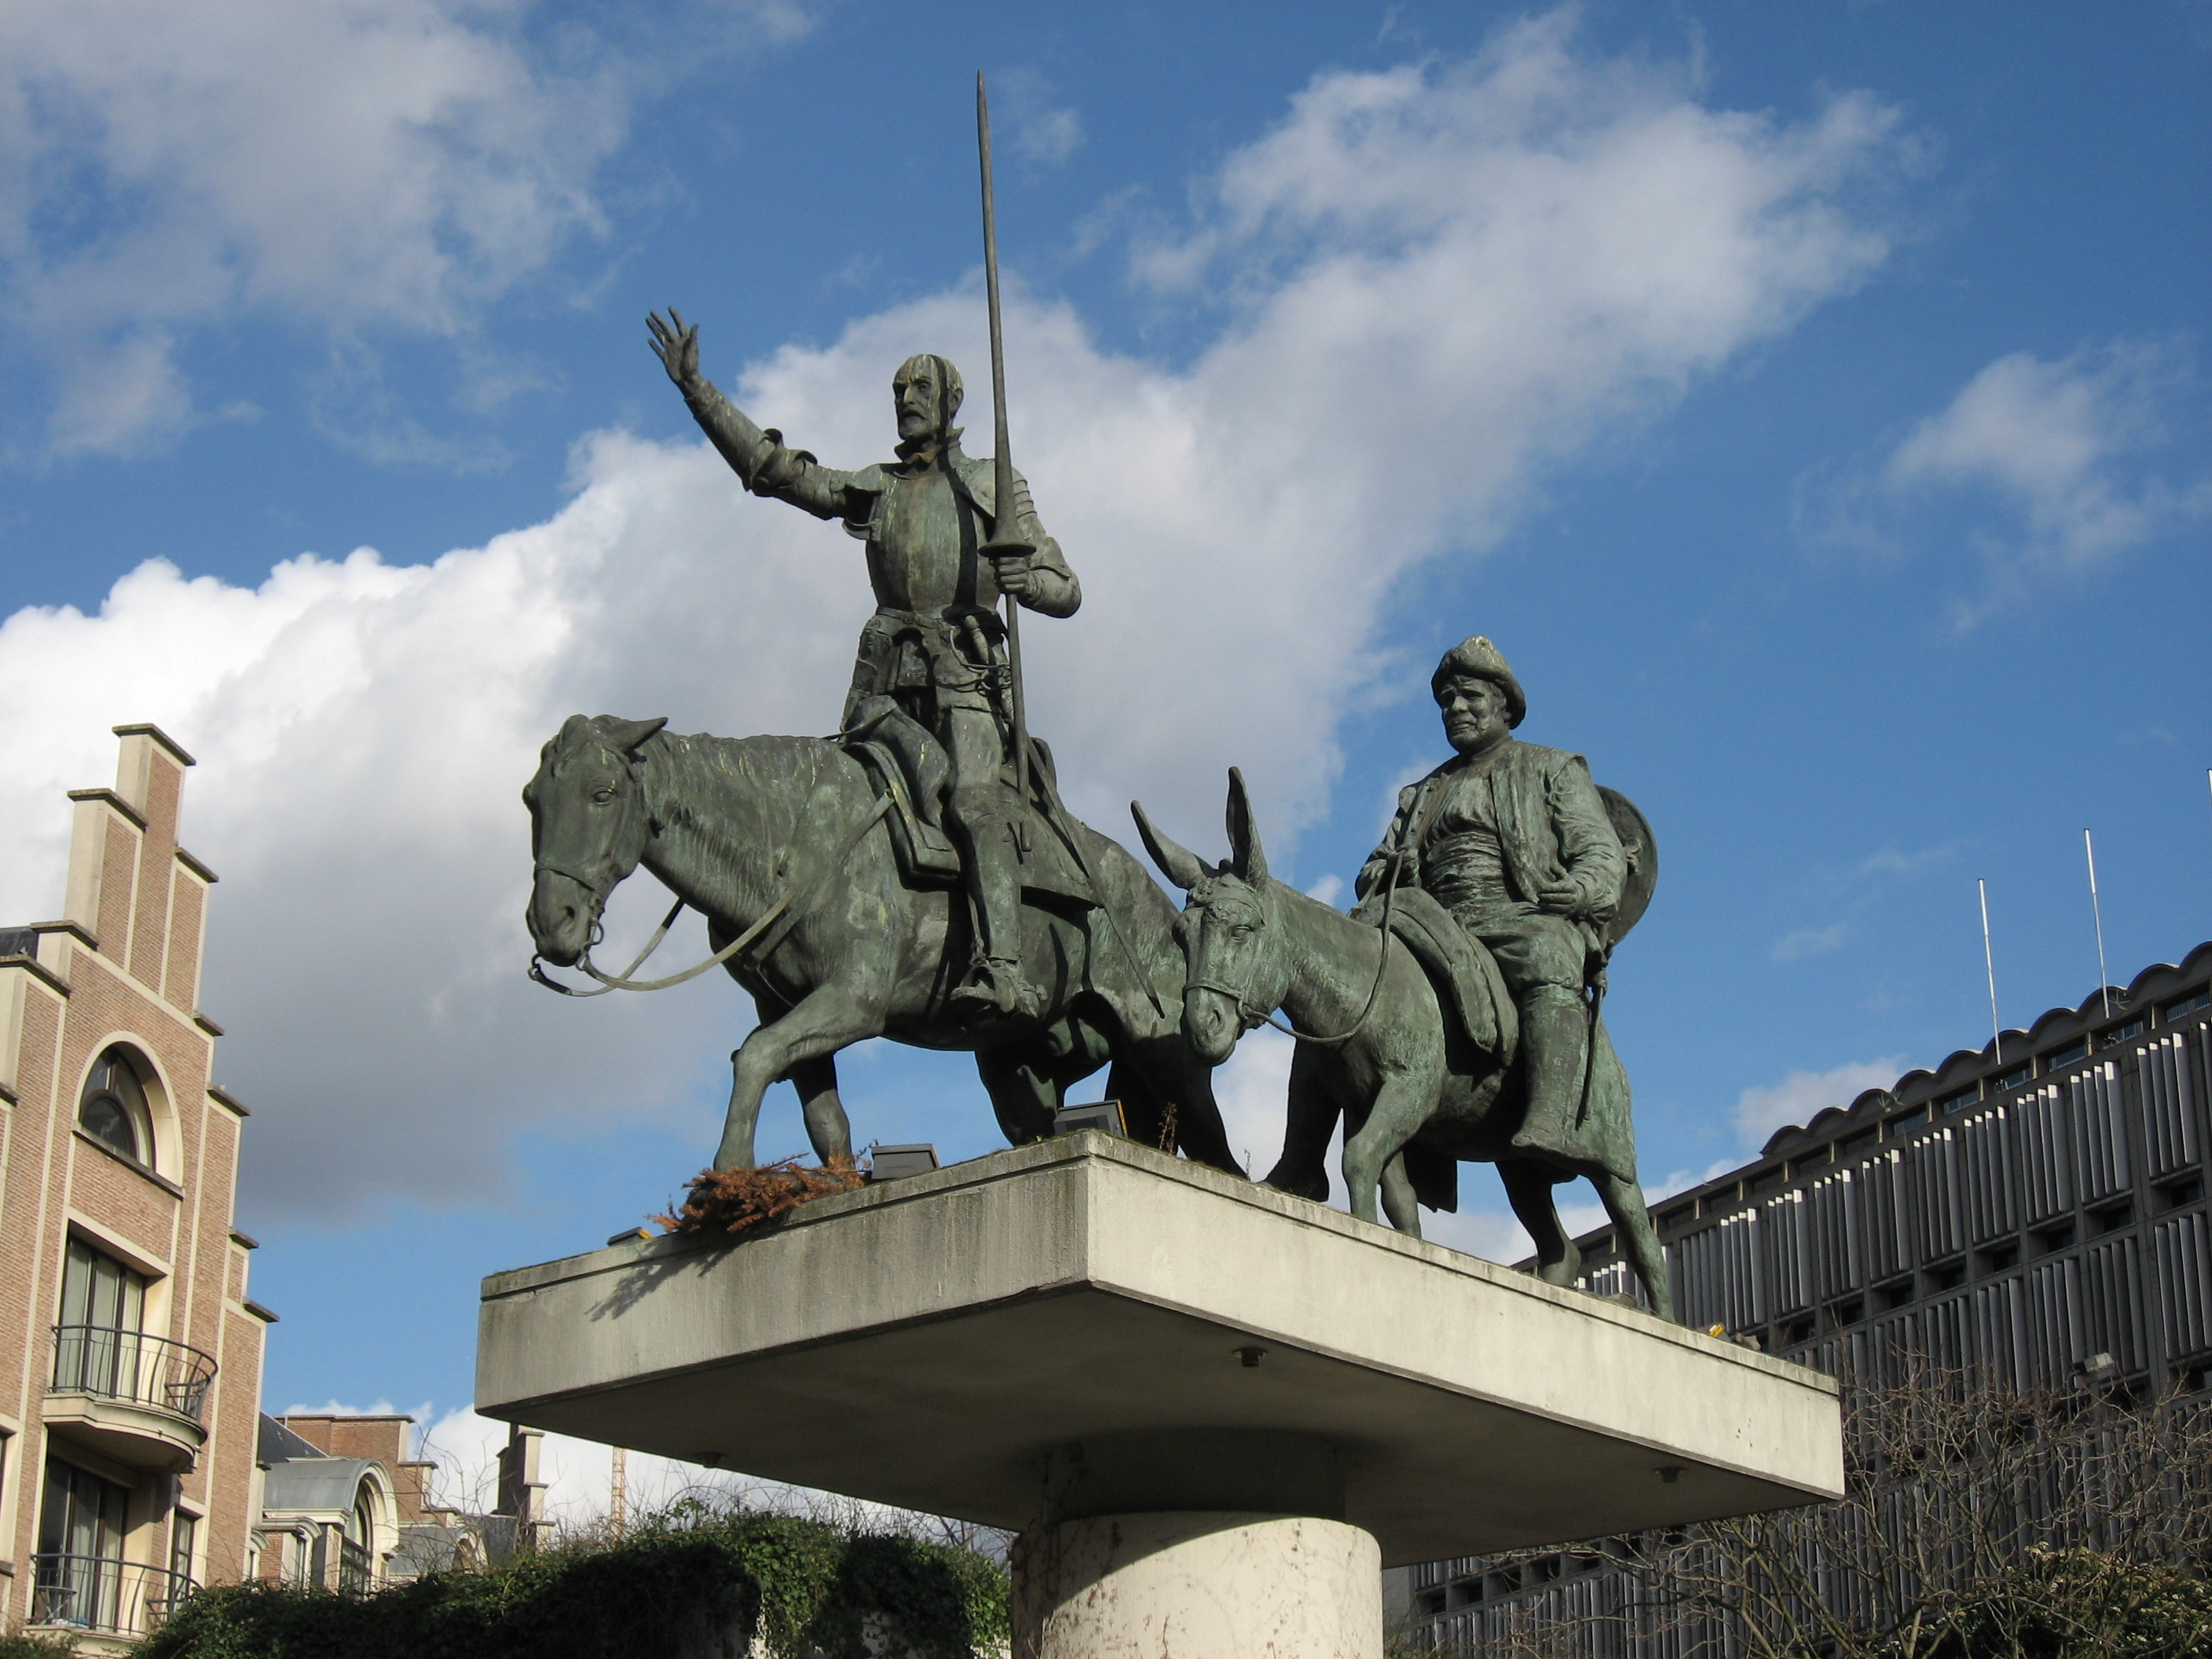 Don Quixote And Sancho Panza Statue At Place D Espagne These Are The Two Main Characters Depicted In Miguel De Cervantes Fictional Novel Quijote La